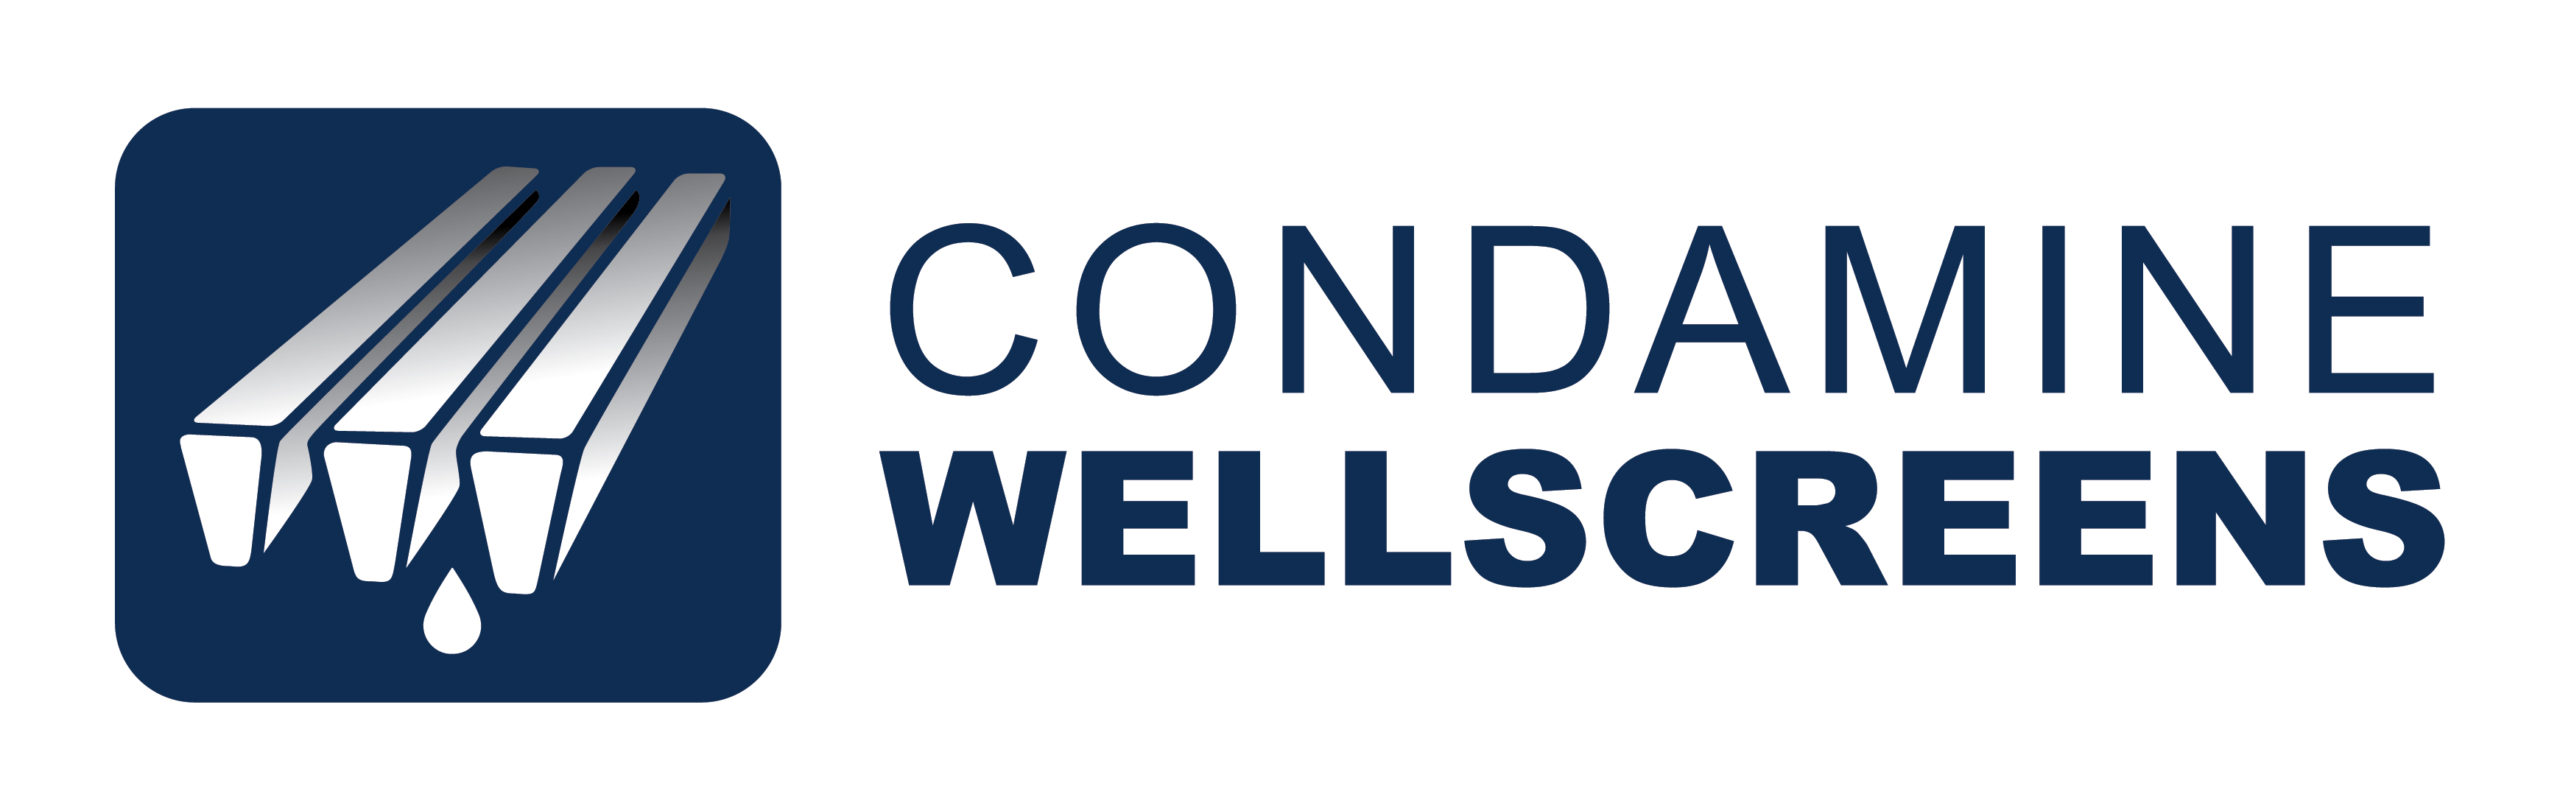 Condamine Wellscreens Pty Ltd